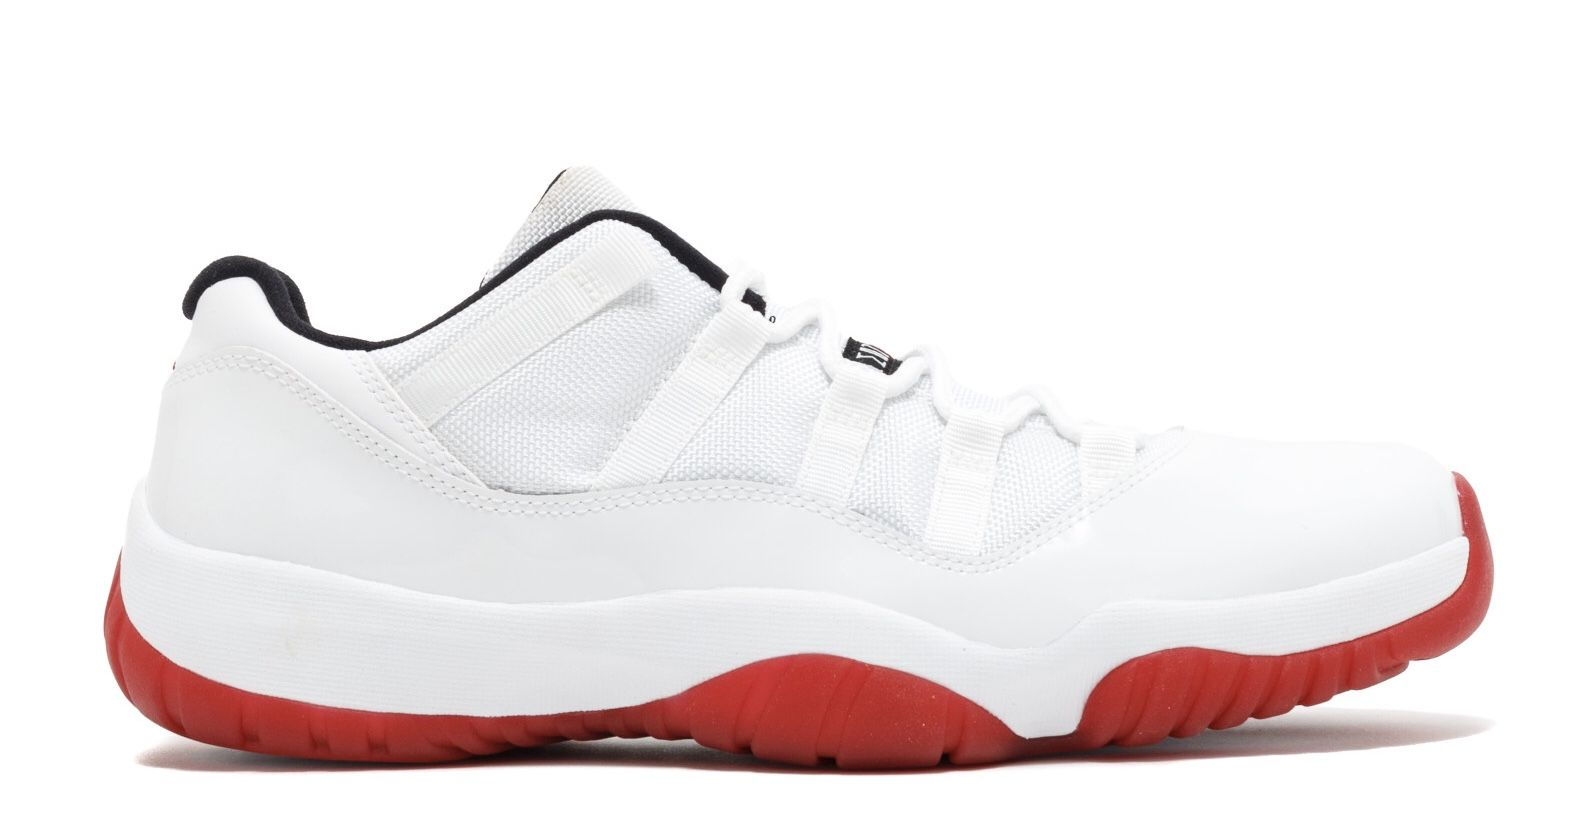 19e96c1cb14 Jordan Retro 11 Low (Red bottom)